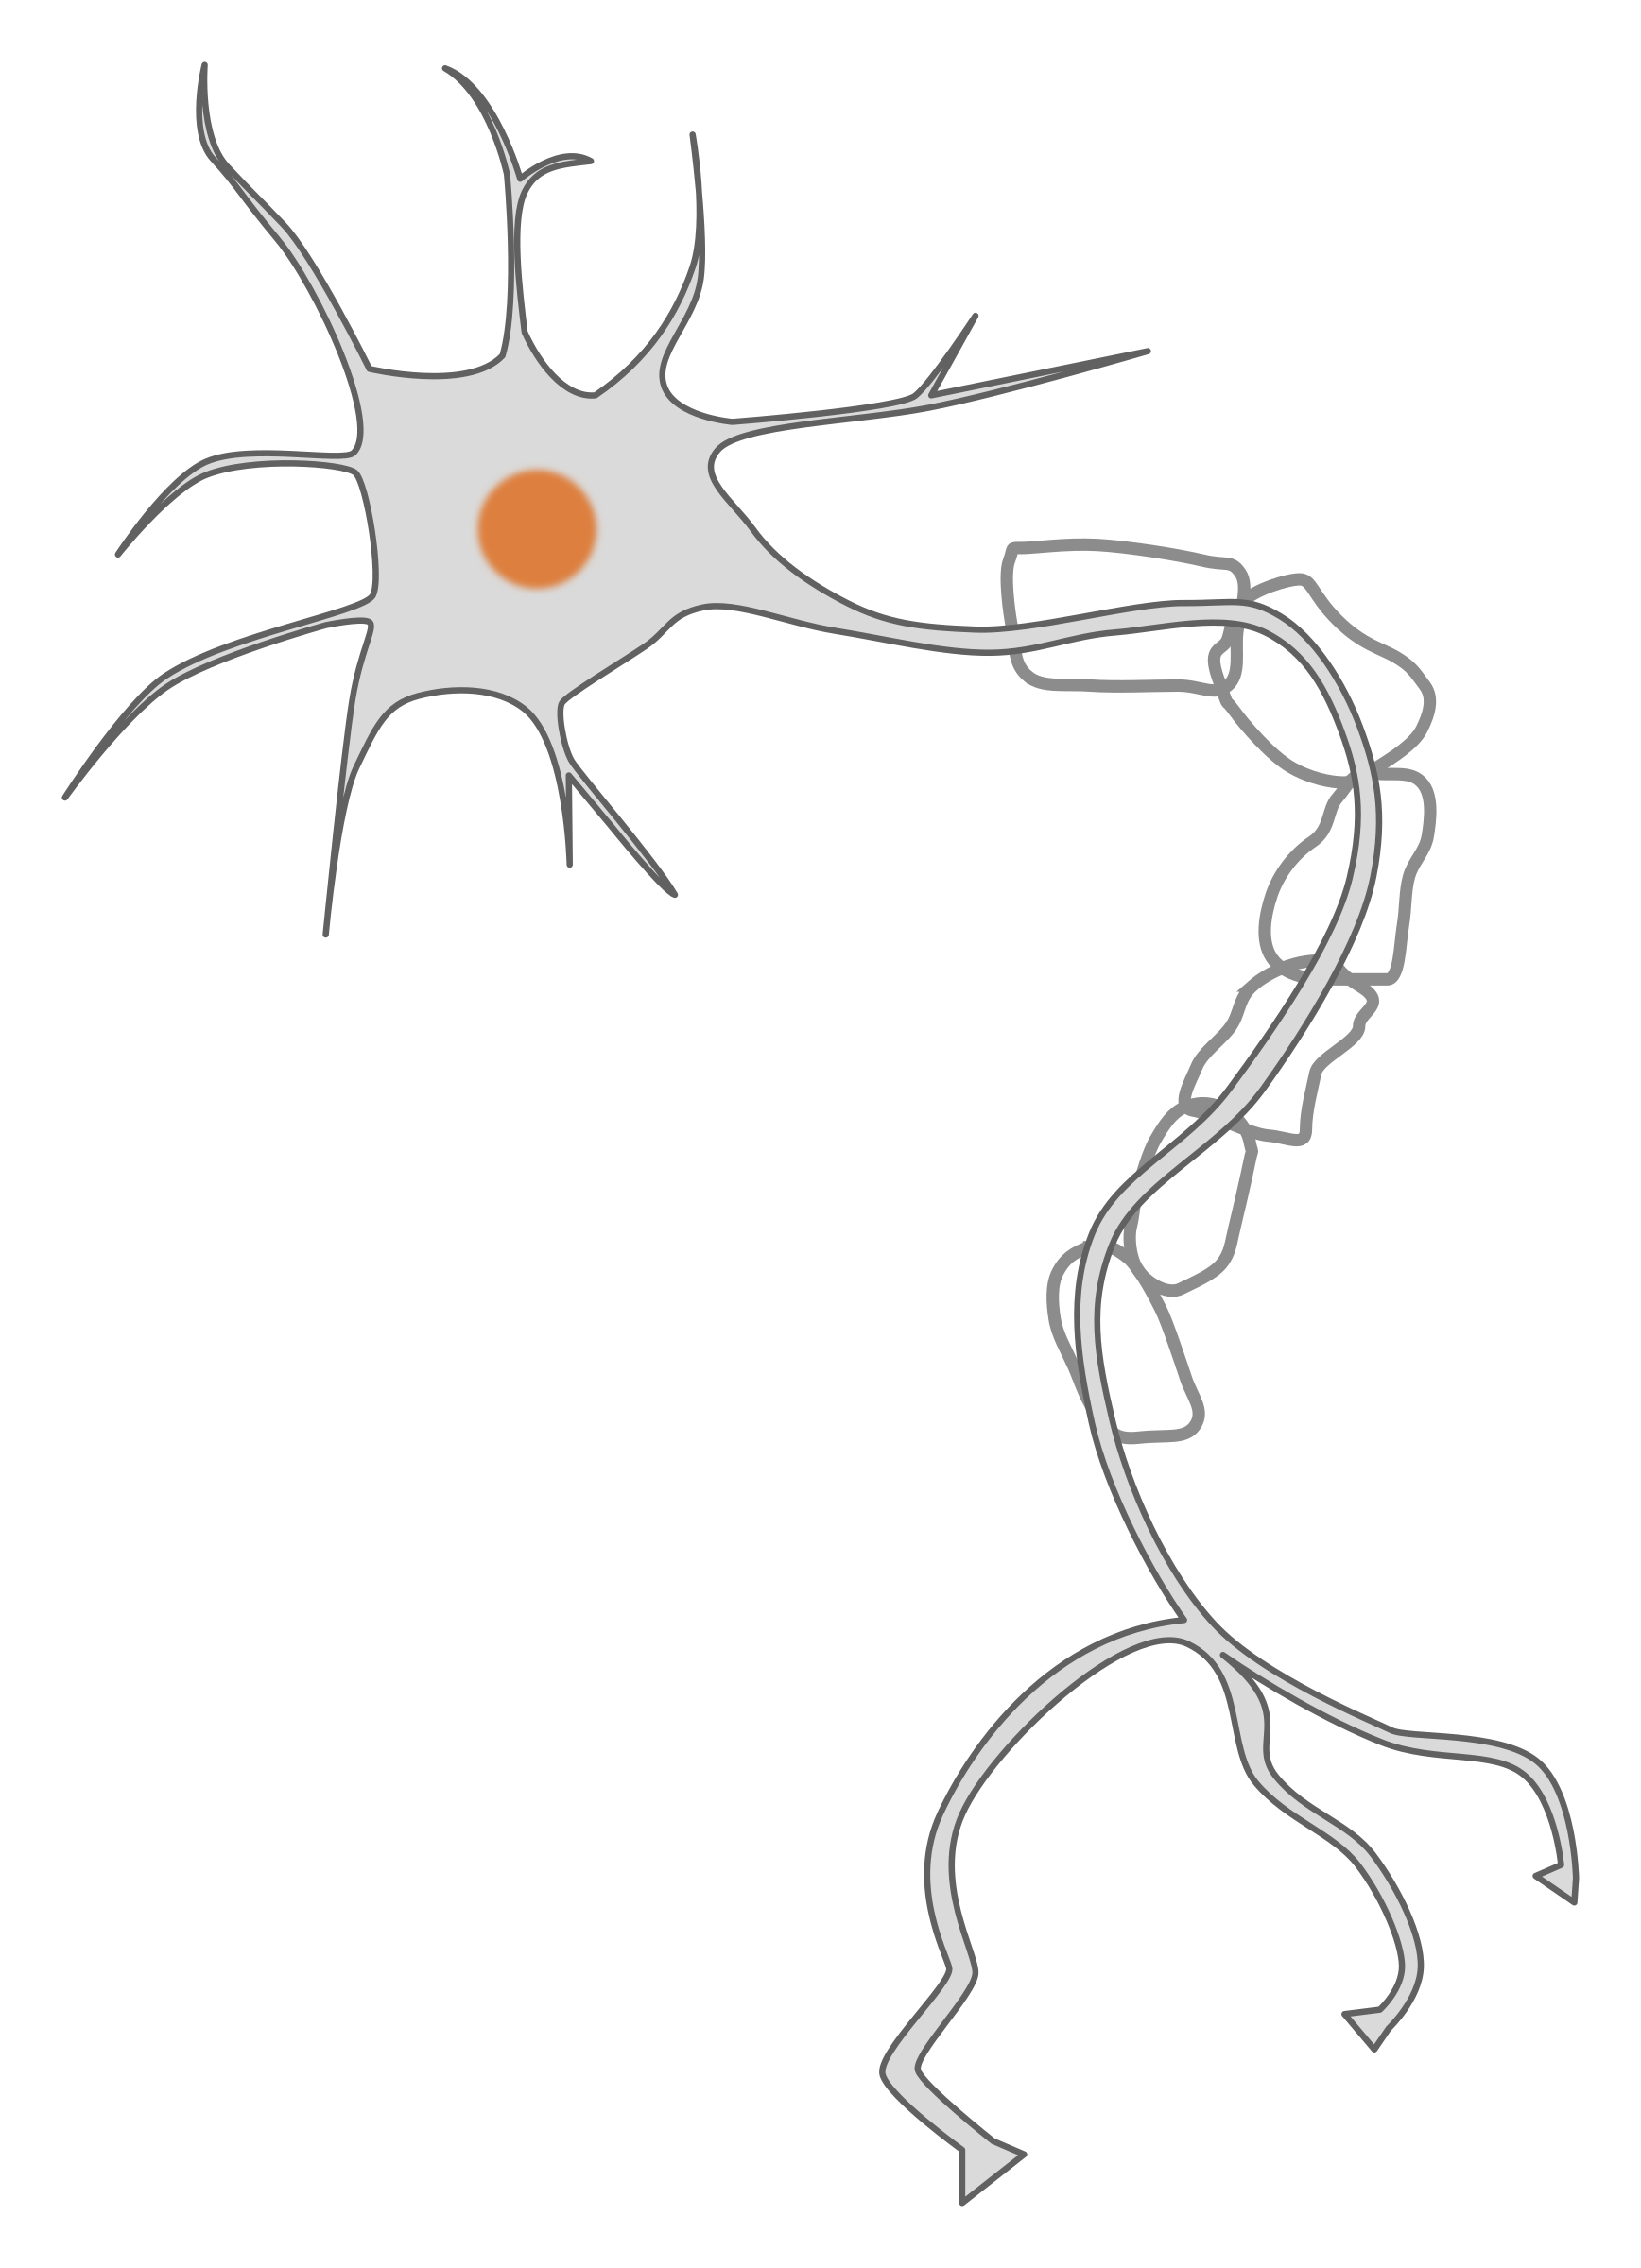 Plain Map Of Canada additionally Tattoo Ideas likewise 48575 lancelet sec moreover Fonts 68426 also Nerve Cell Diagram Unlabeled. on neuron clipart